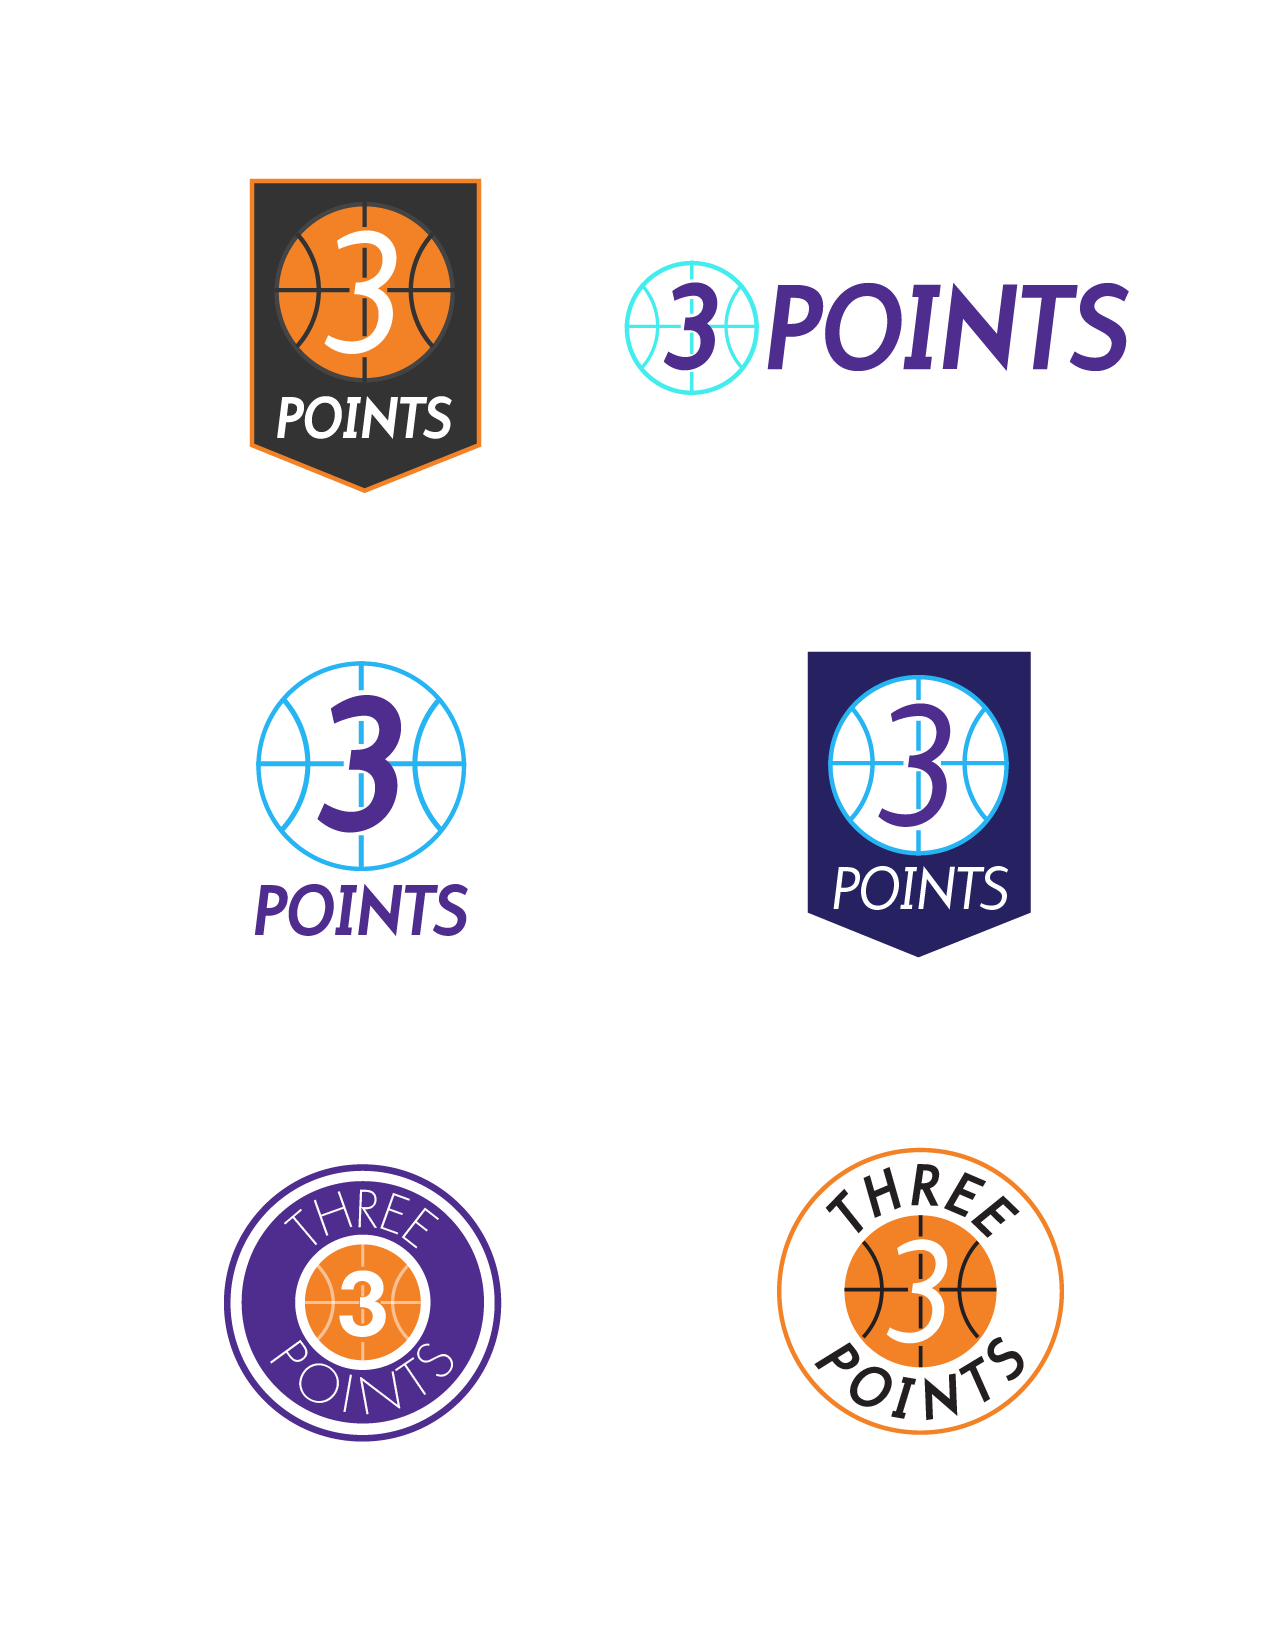 3points_branding_09142016-02.png